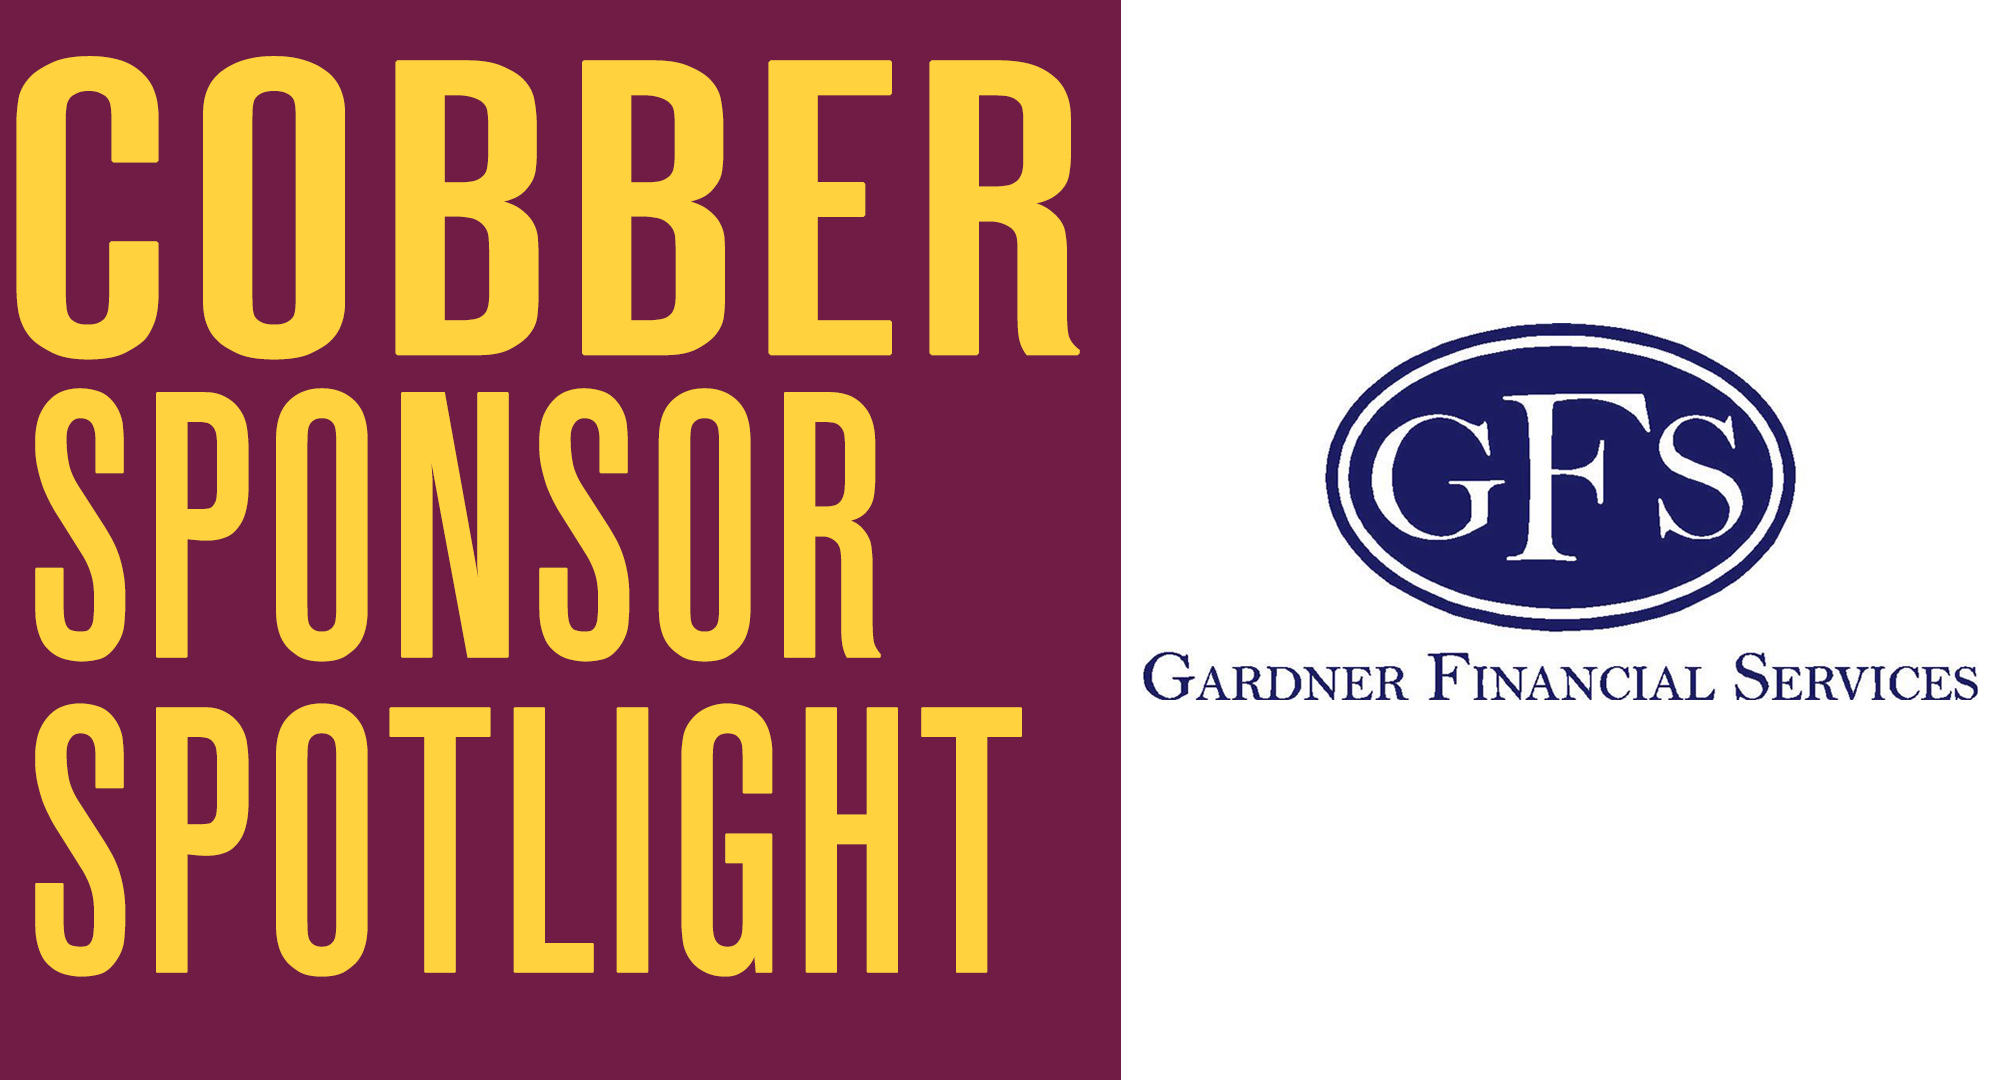 Cobber Sponsor Spotlight - Gardner Financial Services